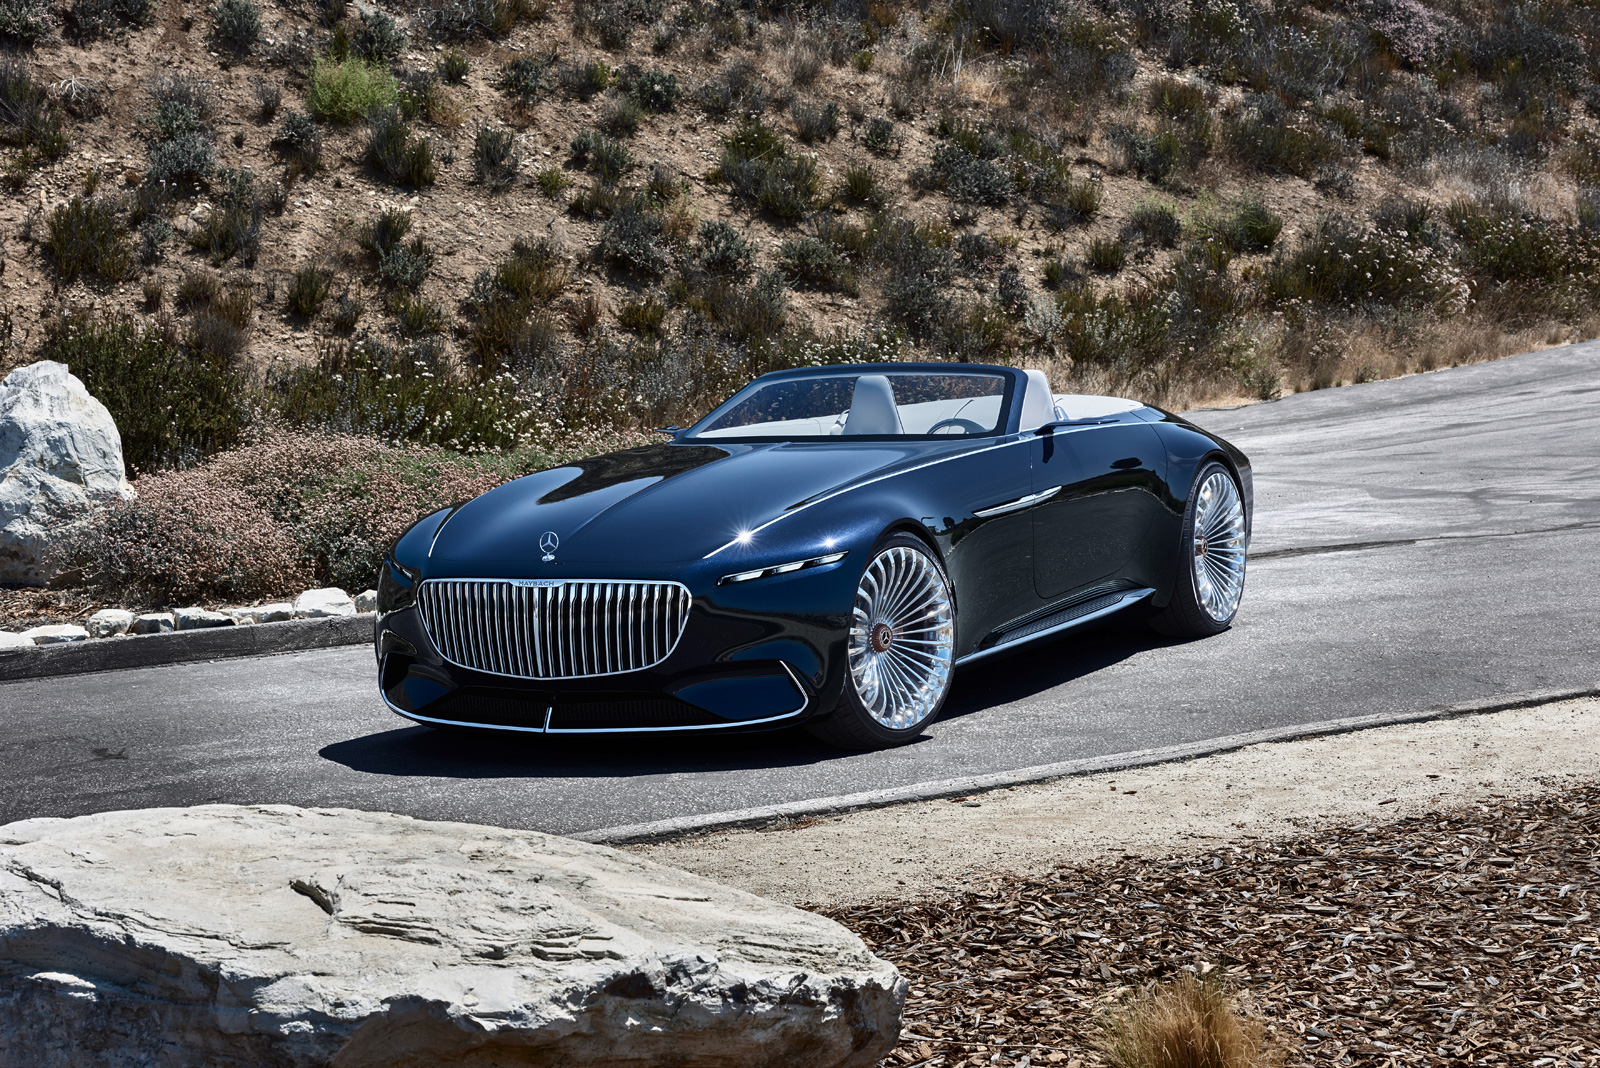 Vision of the future? Mercedes-Benz teases luxury electric vehicle